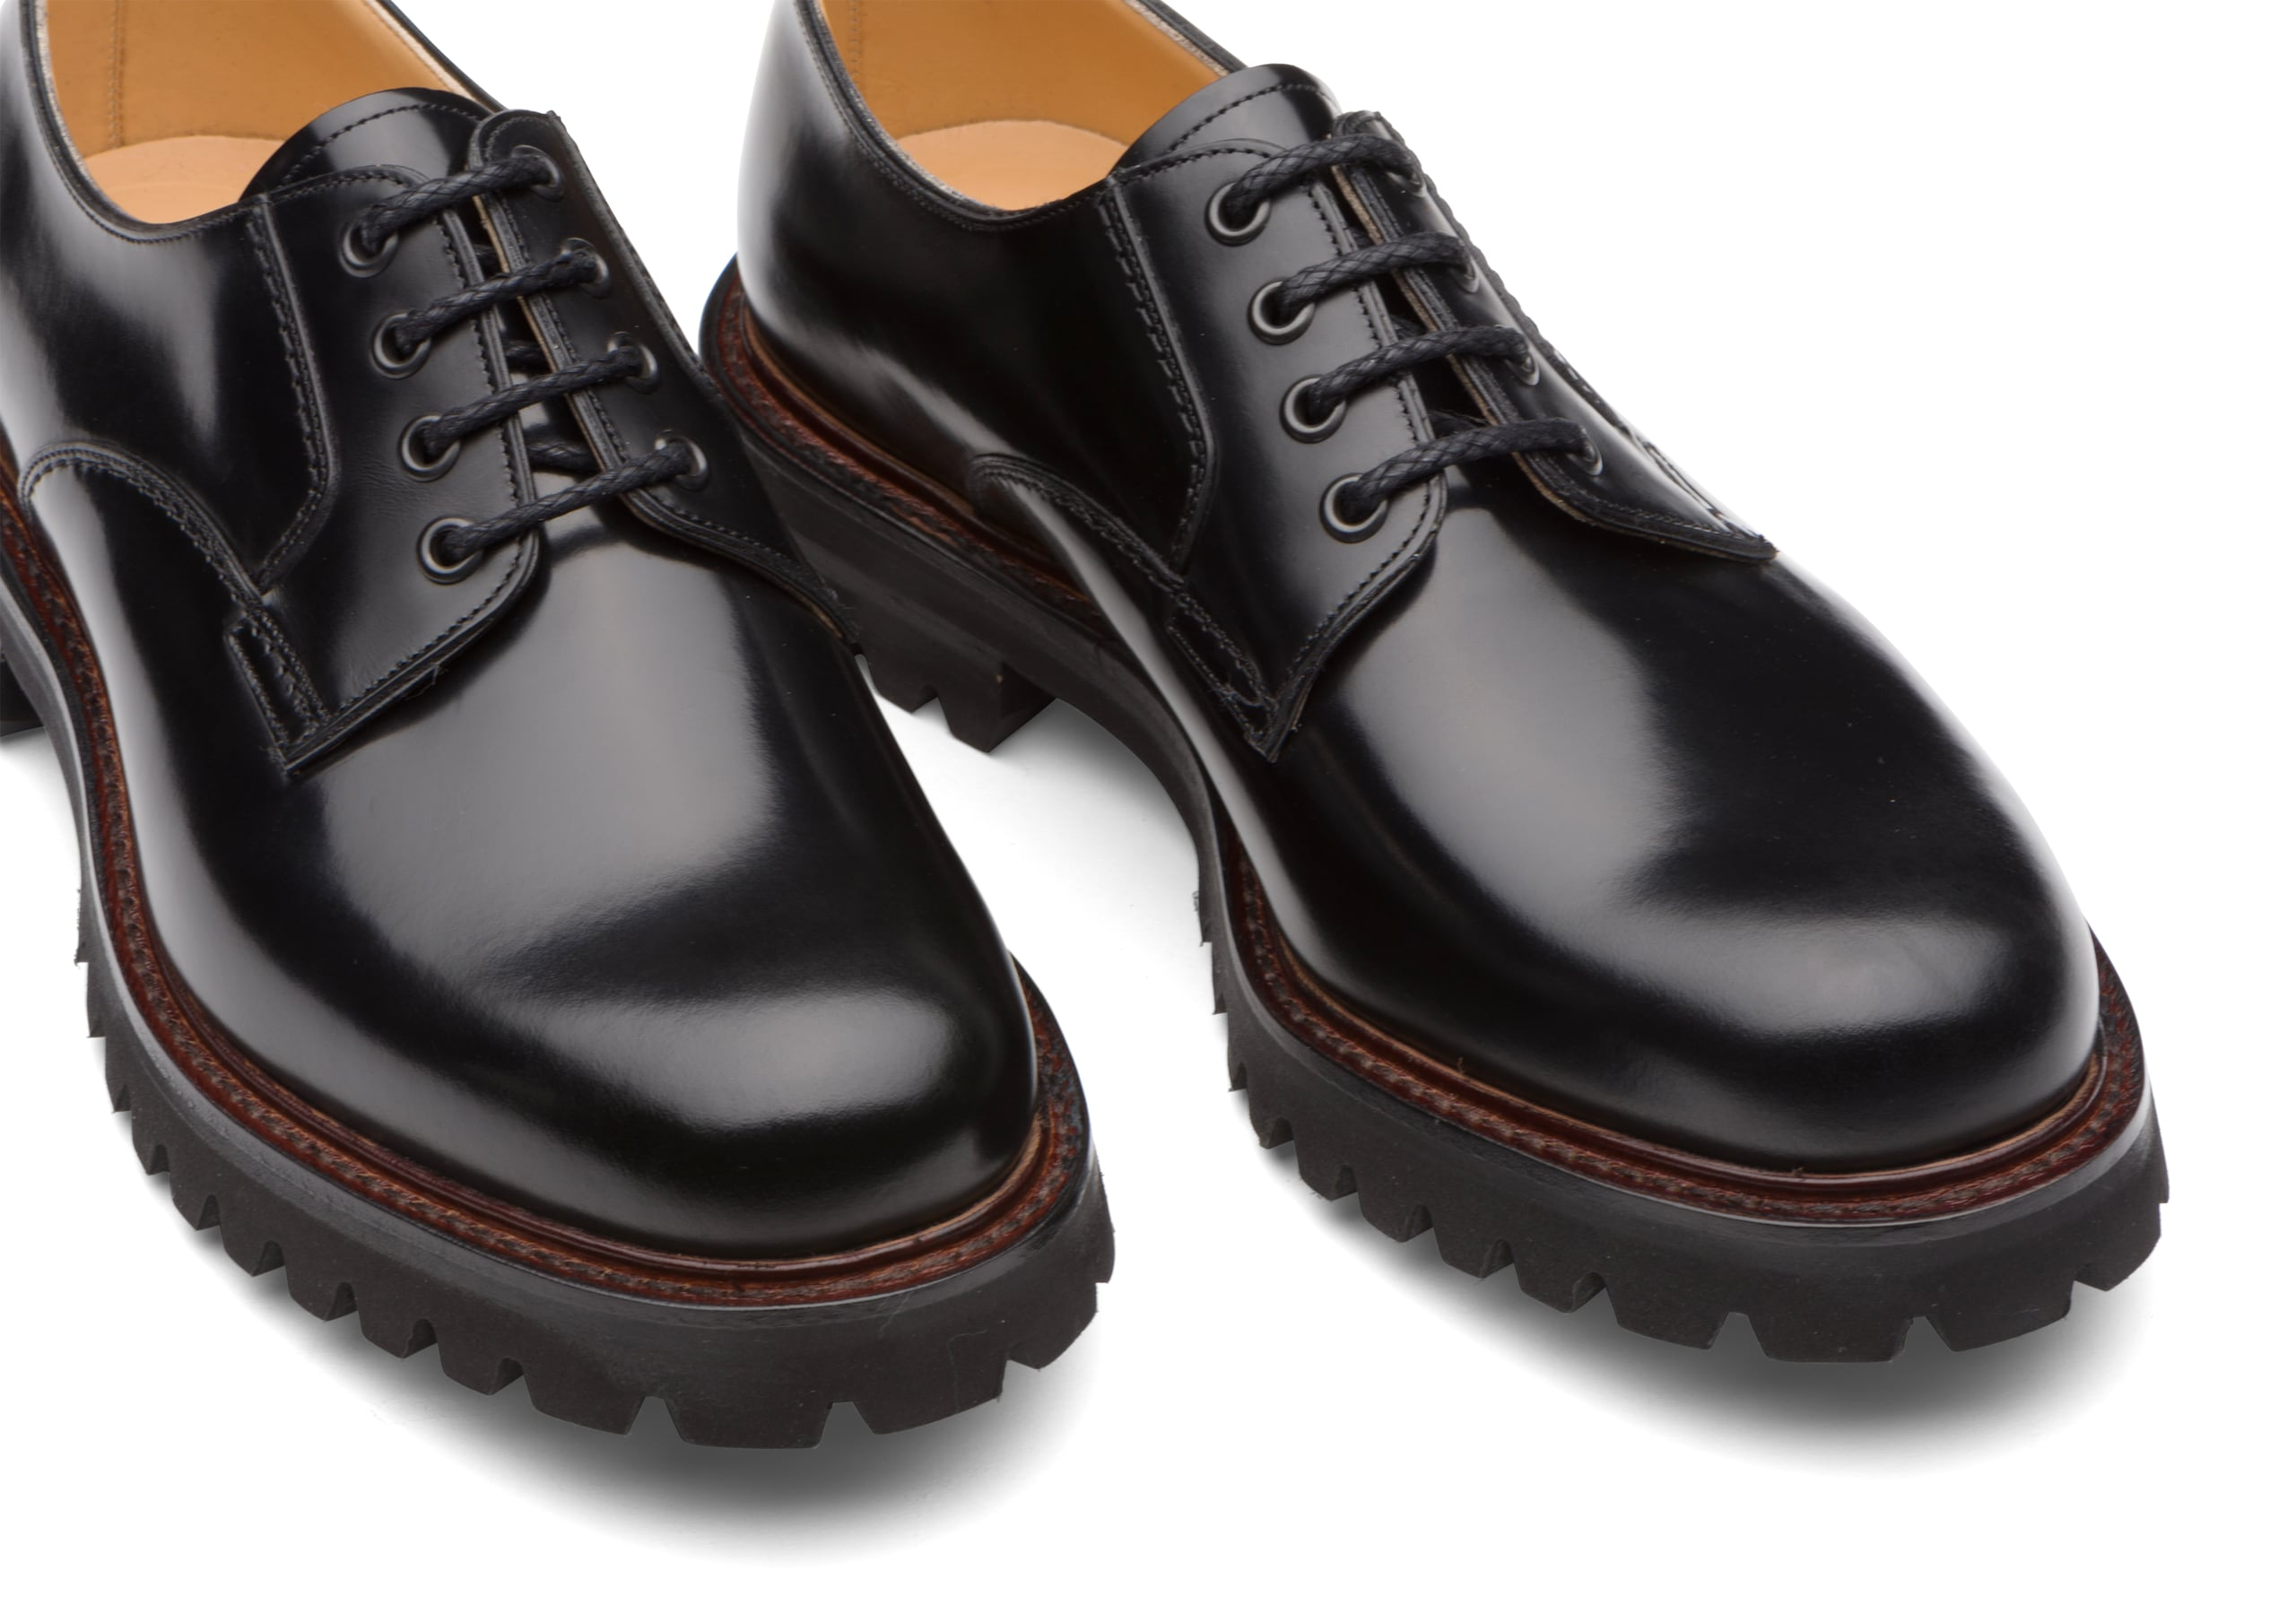 Chester 2 Church's Polished Binder Lace-Up Derby Black